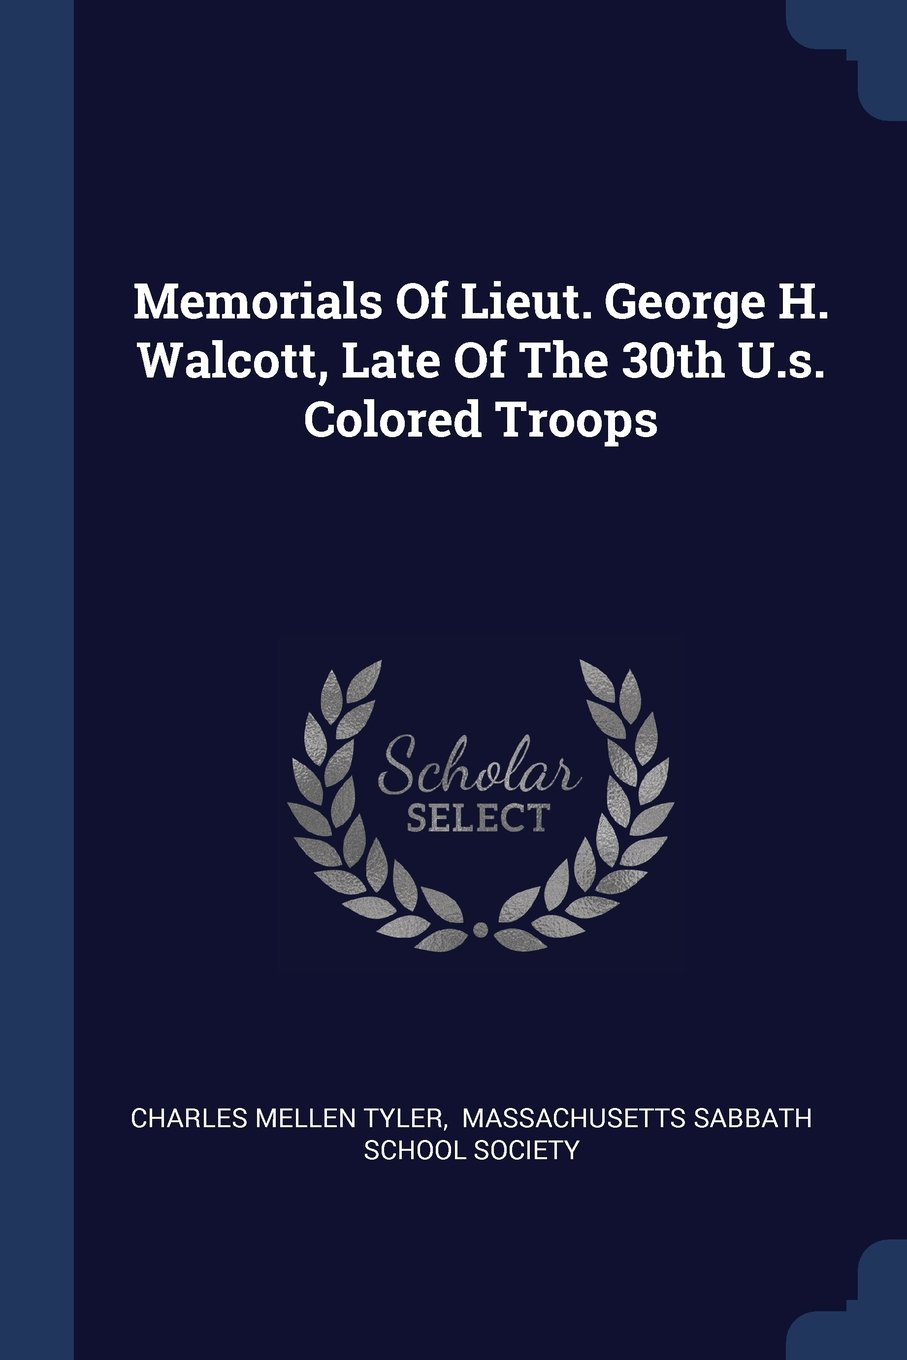 Download Memorials Of Lieut. George H. Walcott, Late Of The 30th U.s. Colored Troops pdf